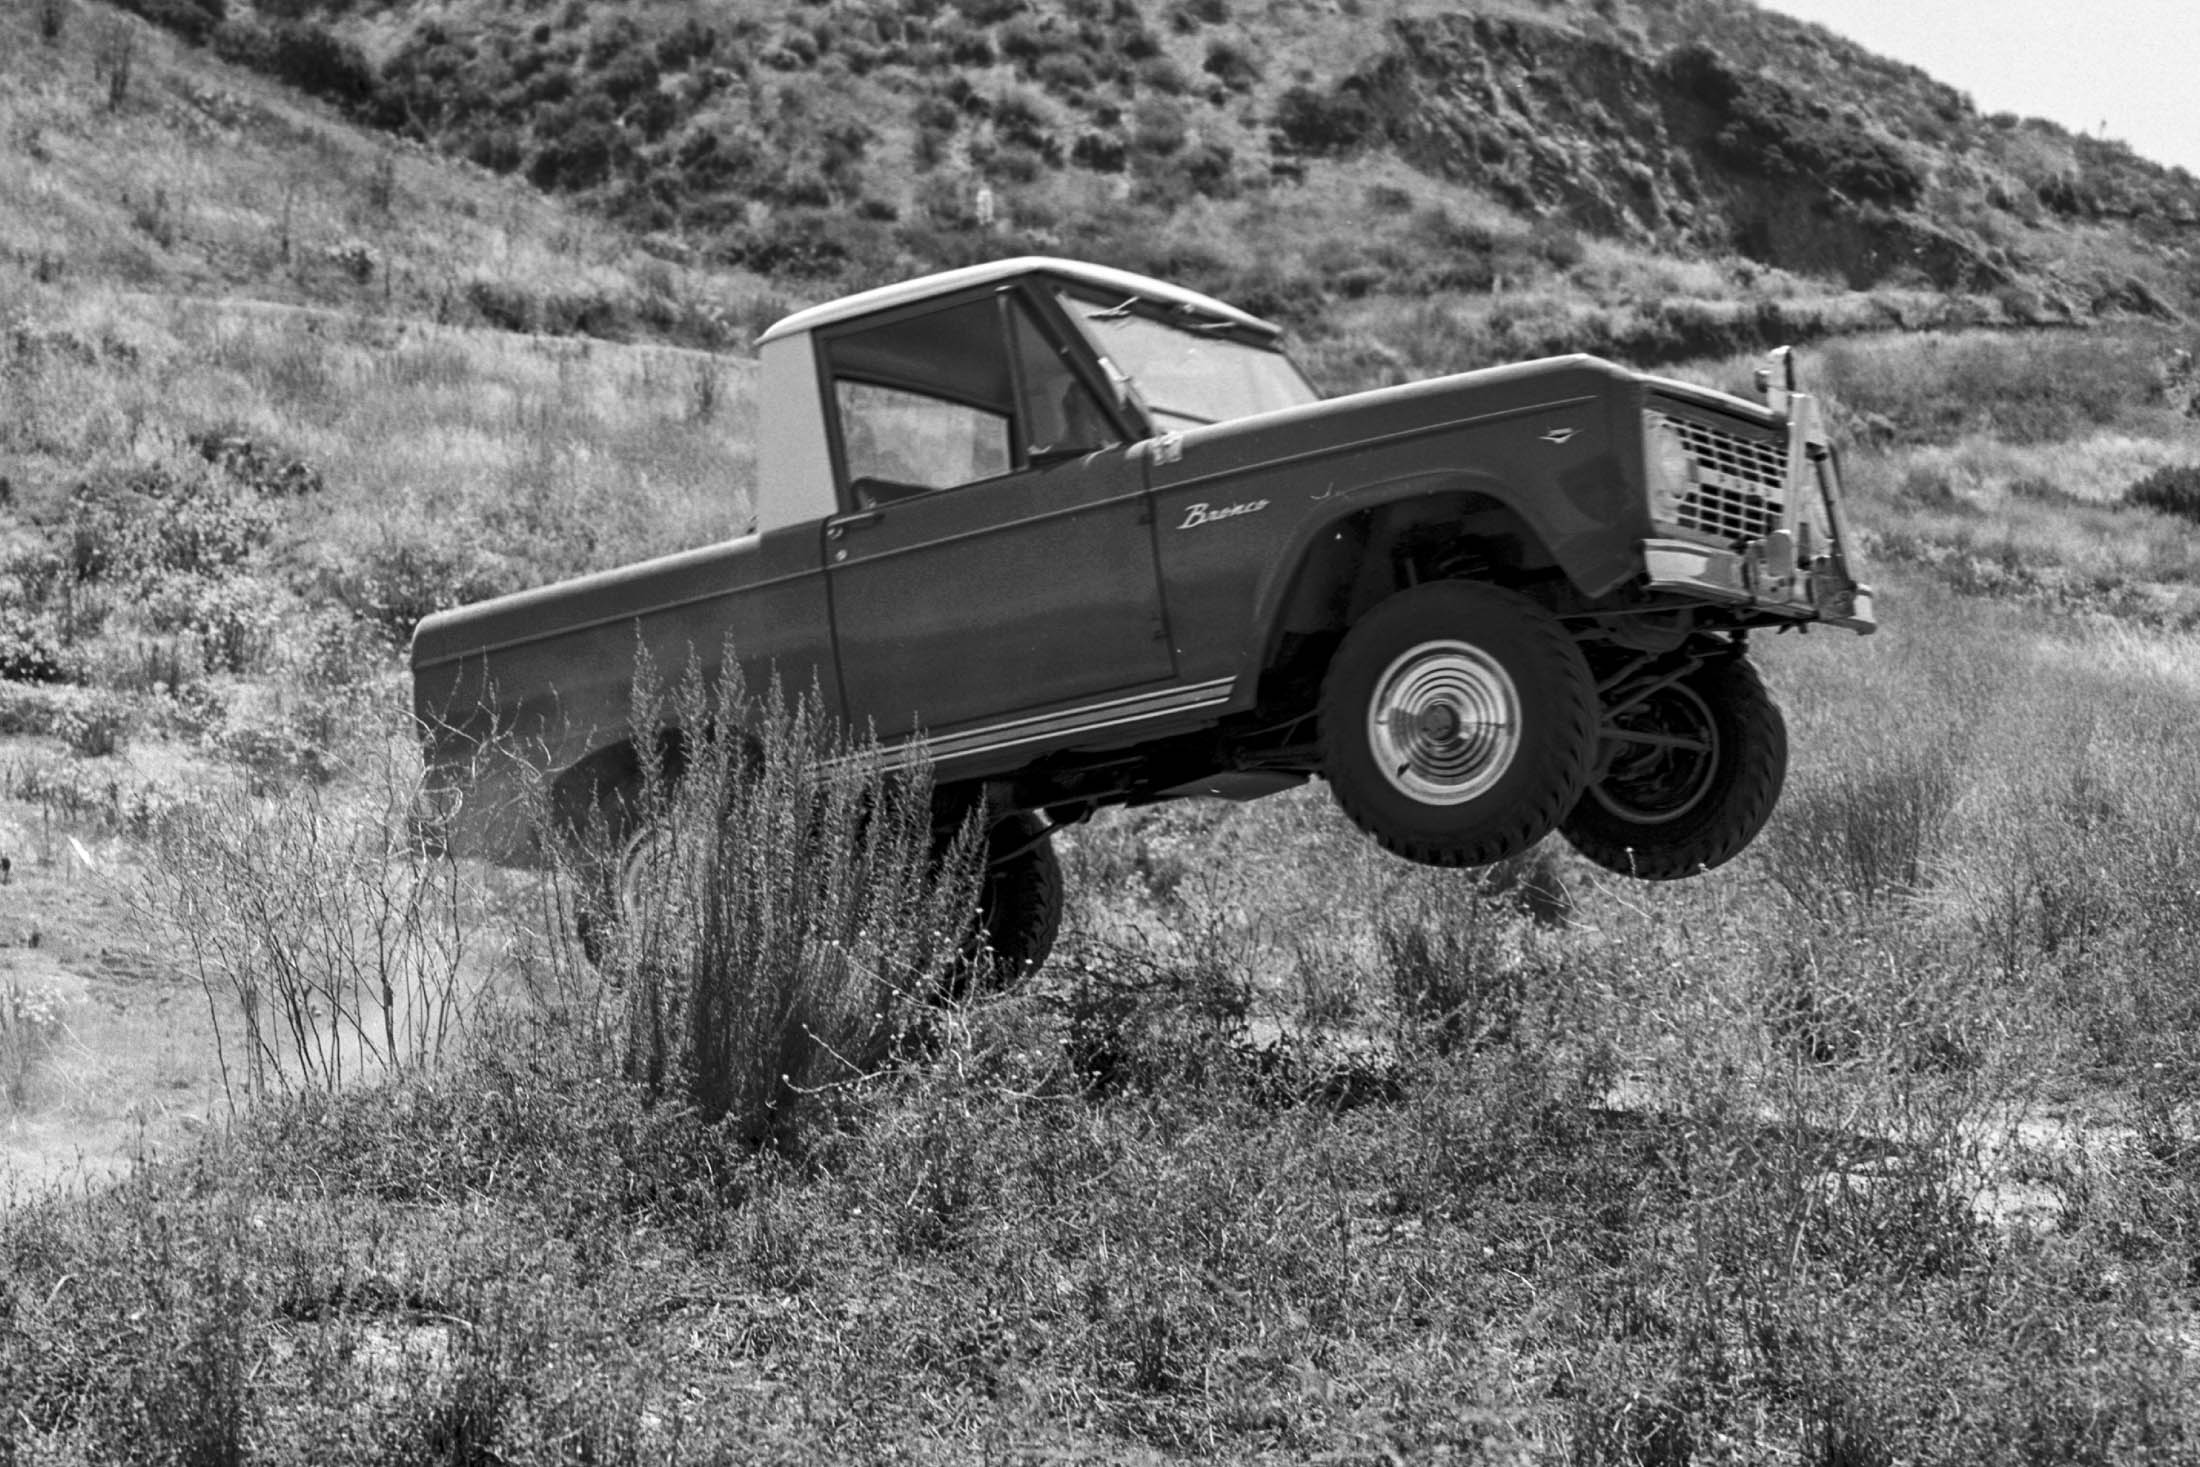 Buy a Vintage Ford Bronco Now, Before They Cost More Than $100,000